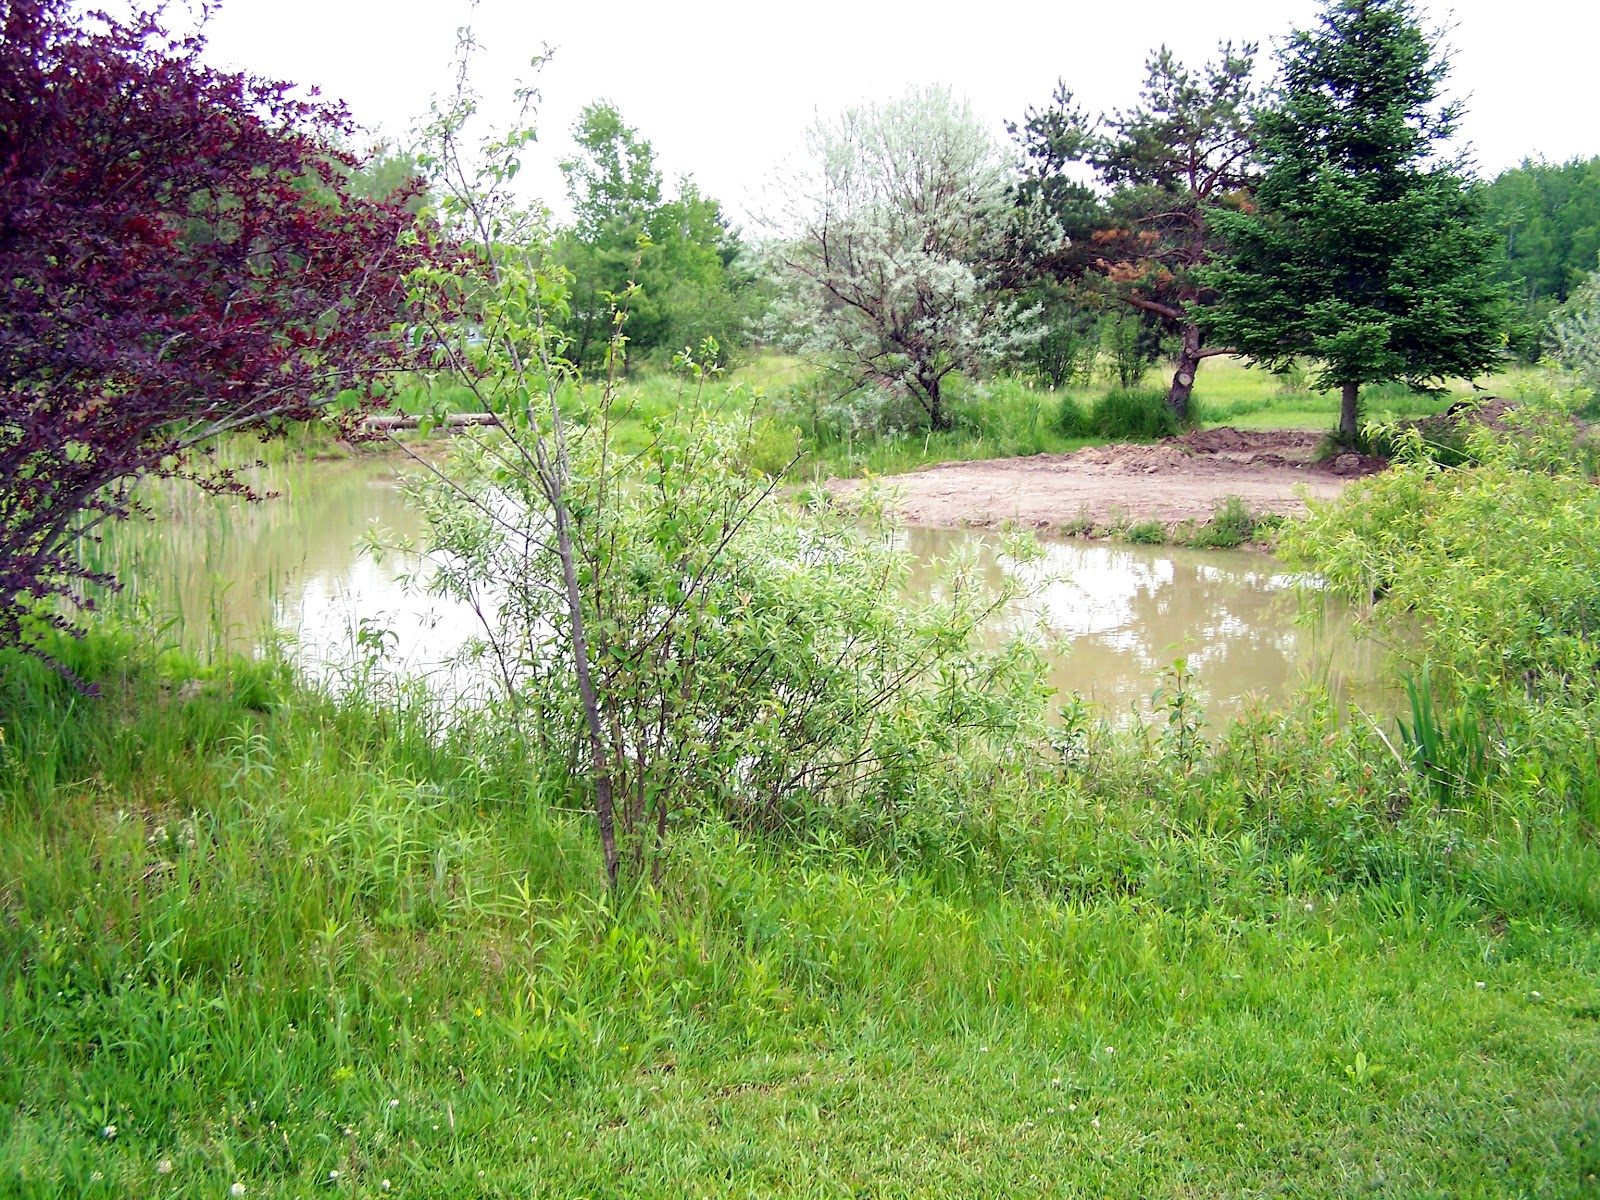 Landscaping Pond Banks : The pond bank will be dug nearer base of trees and shrubs here